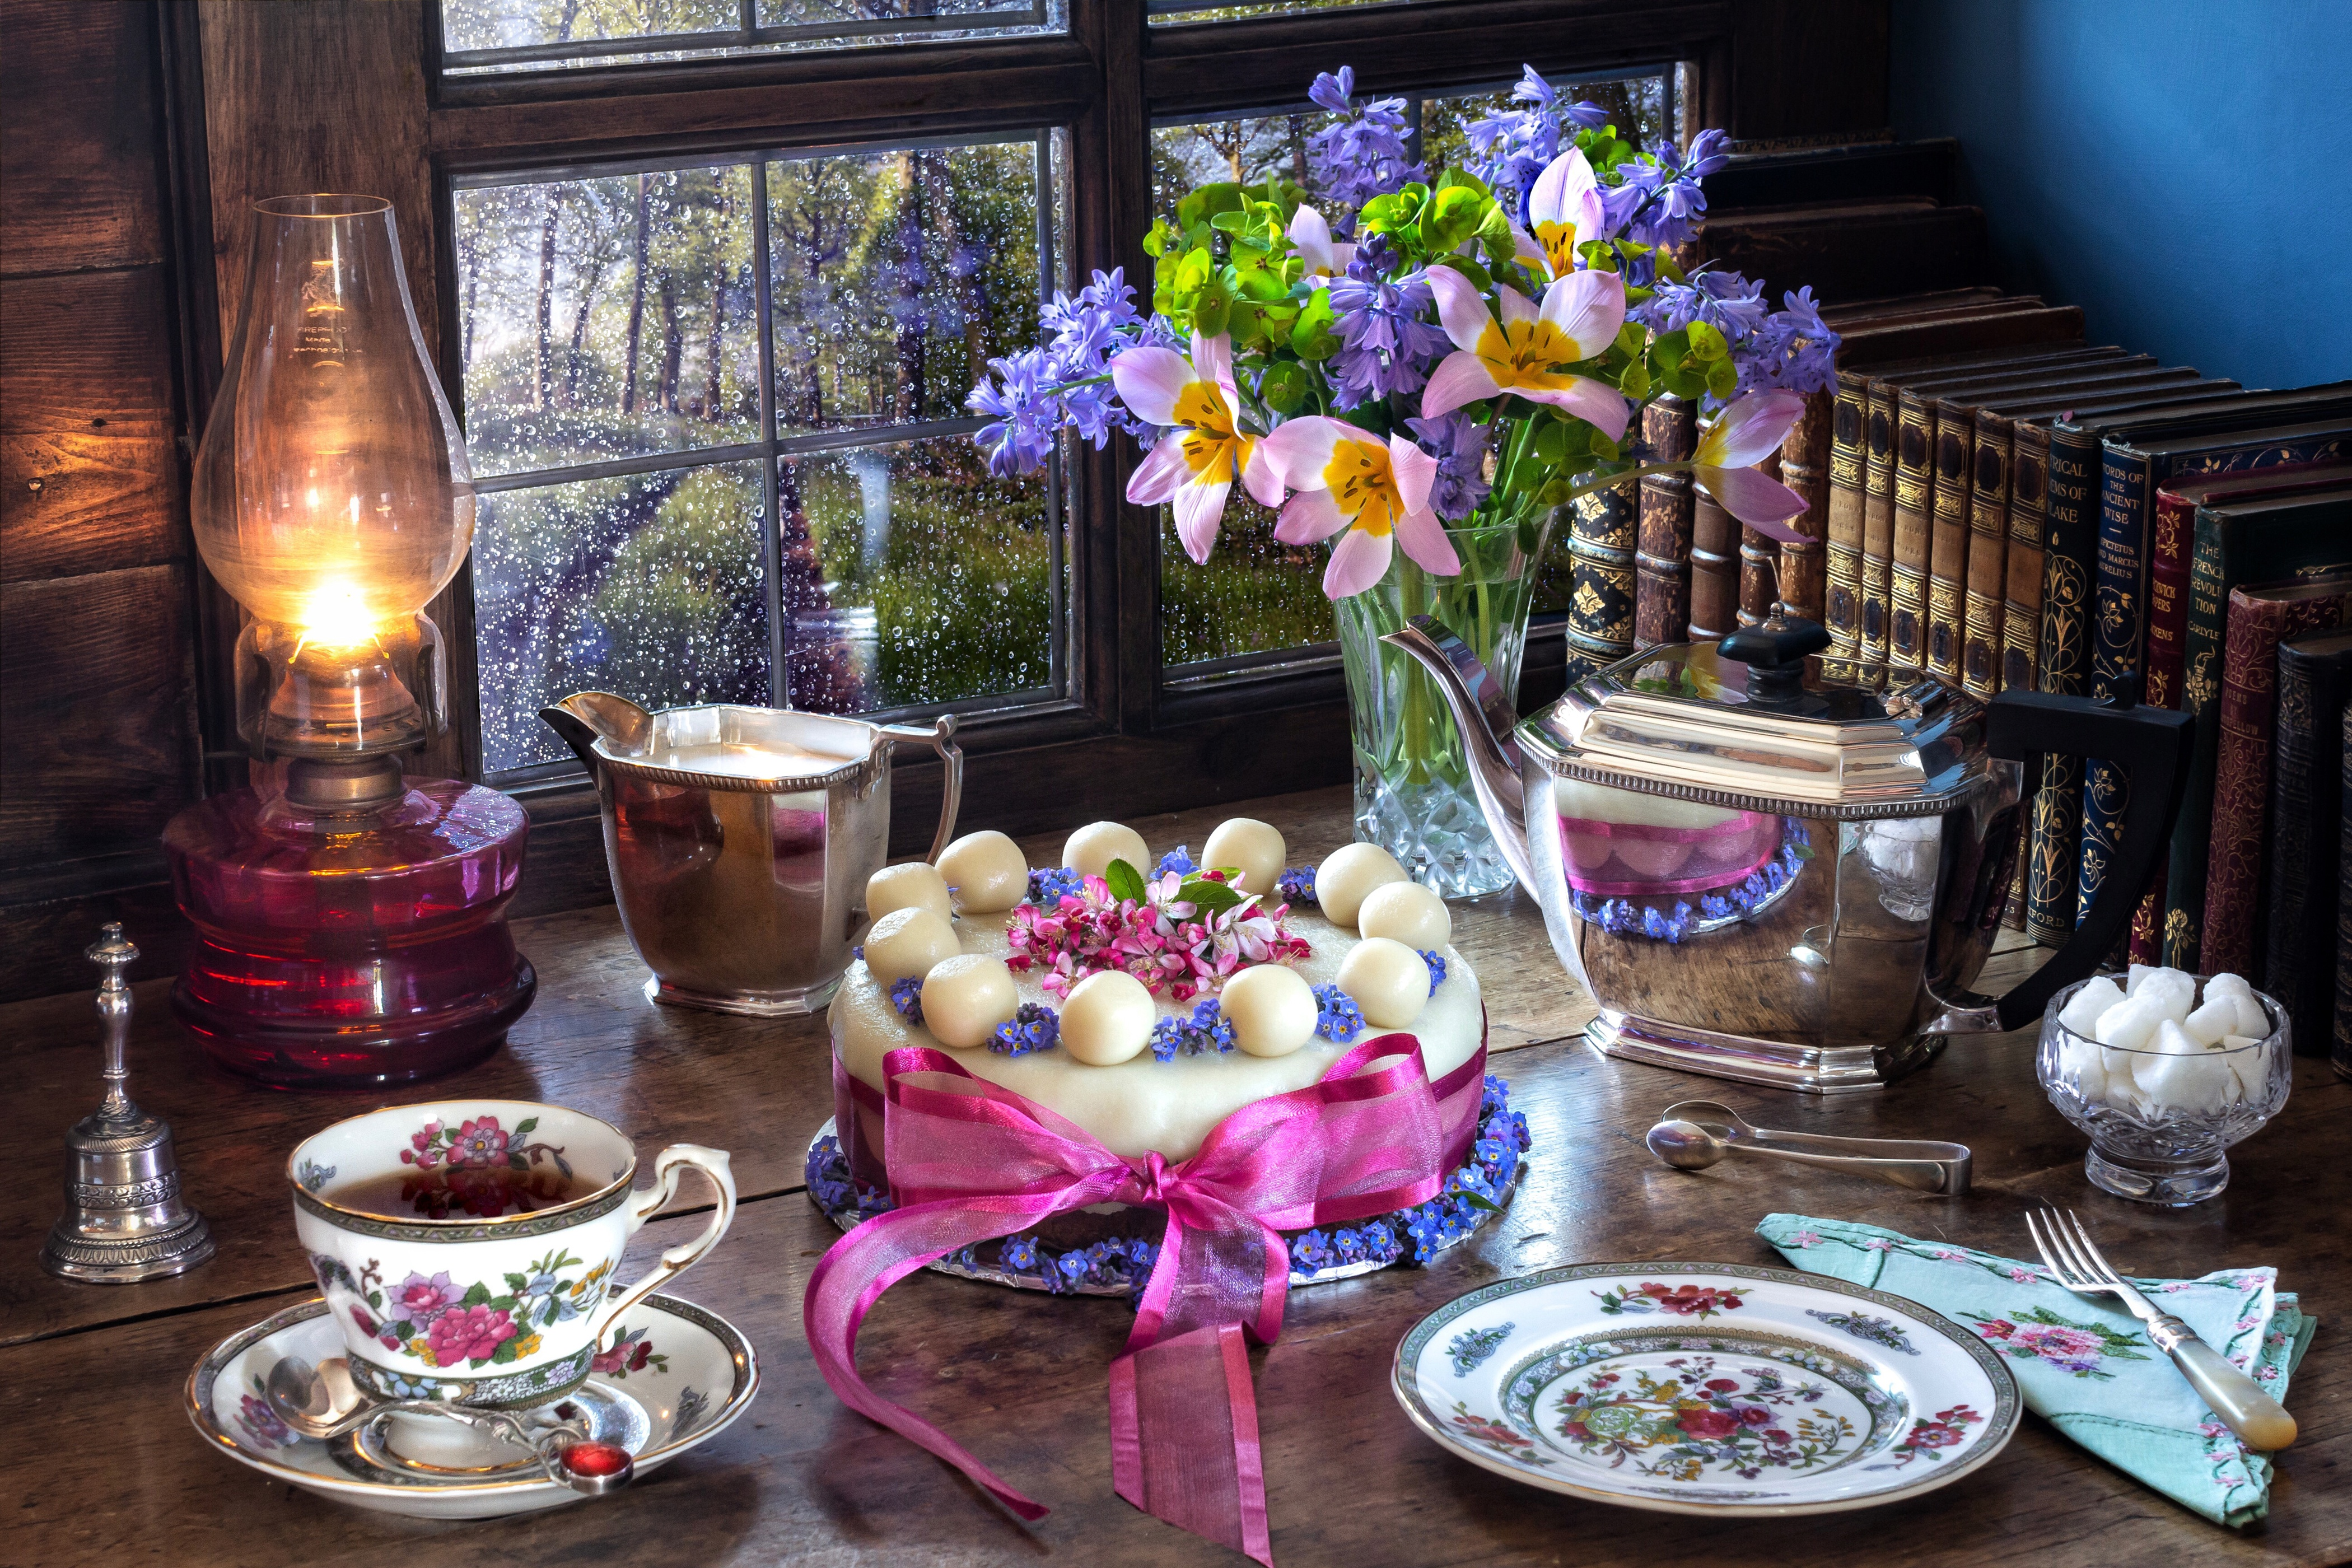 Cake Cup Lantern Flower Plate Book Kettle Window Ribbon Vase Pink Flower Raindrops Bell Saucer Flame 4200x2800